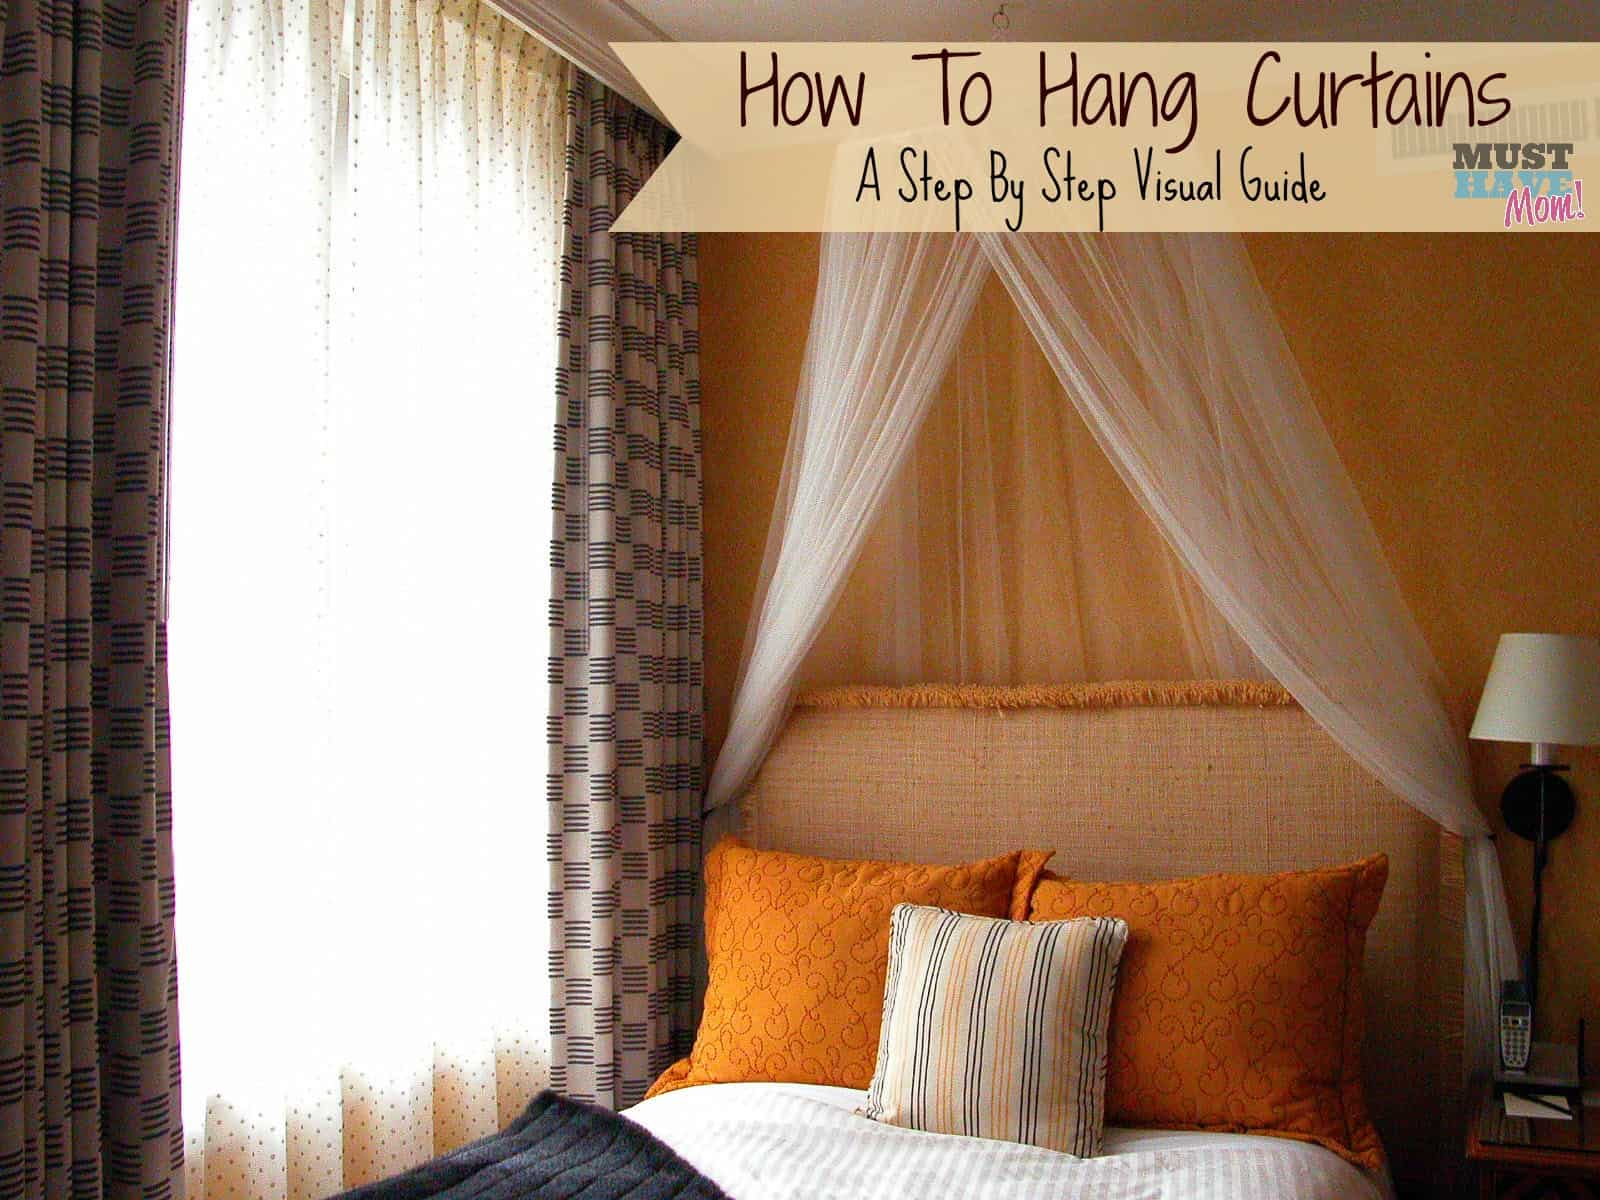 How To Hang Curtains A Step By Step Visual Guide Must Have Mom,Natural Mosquito Repellent Spray For Home